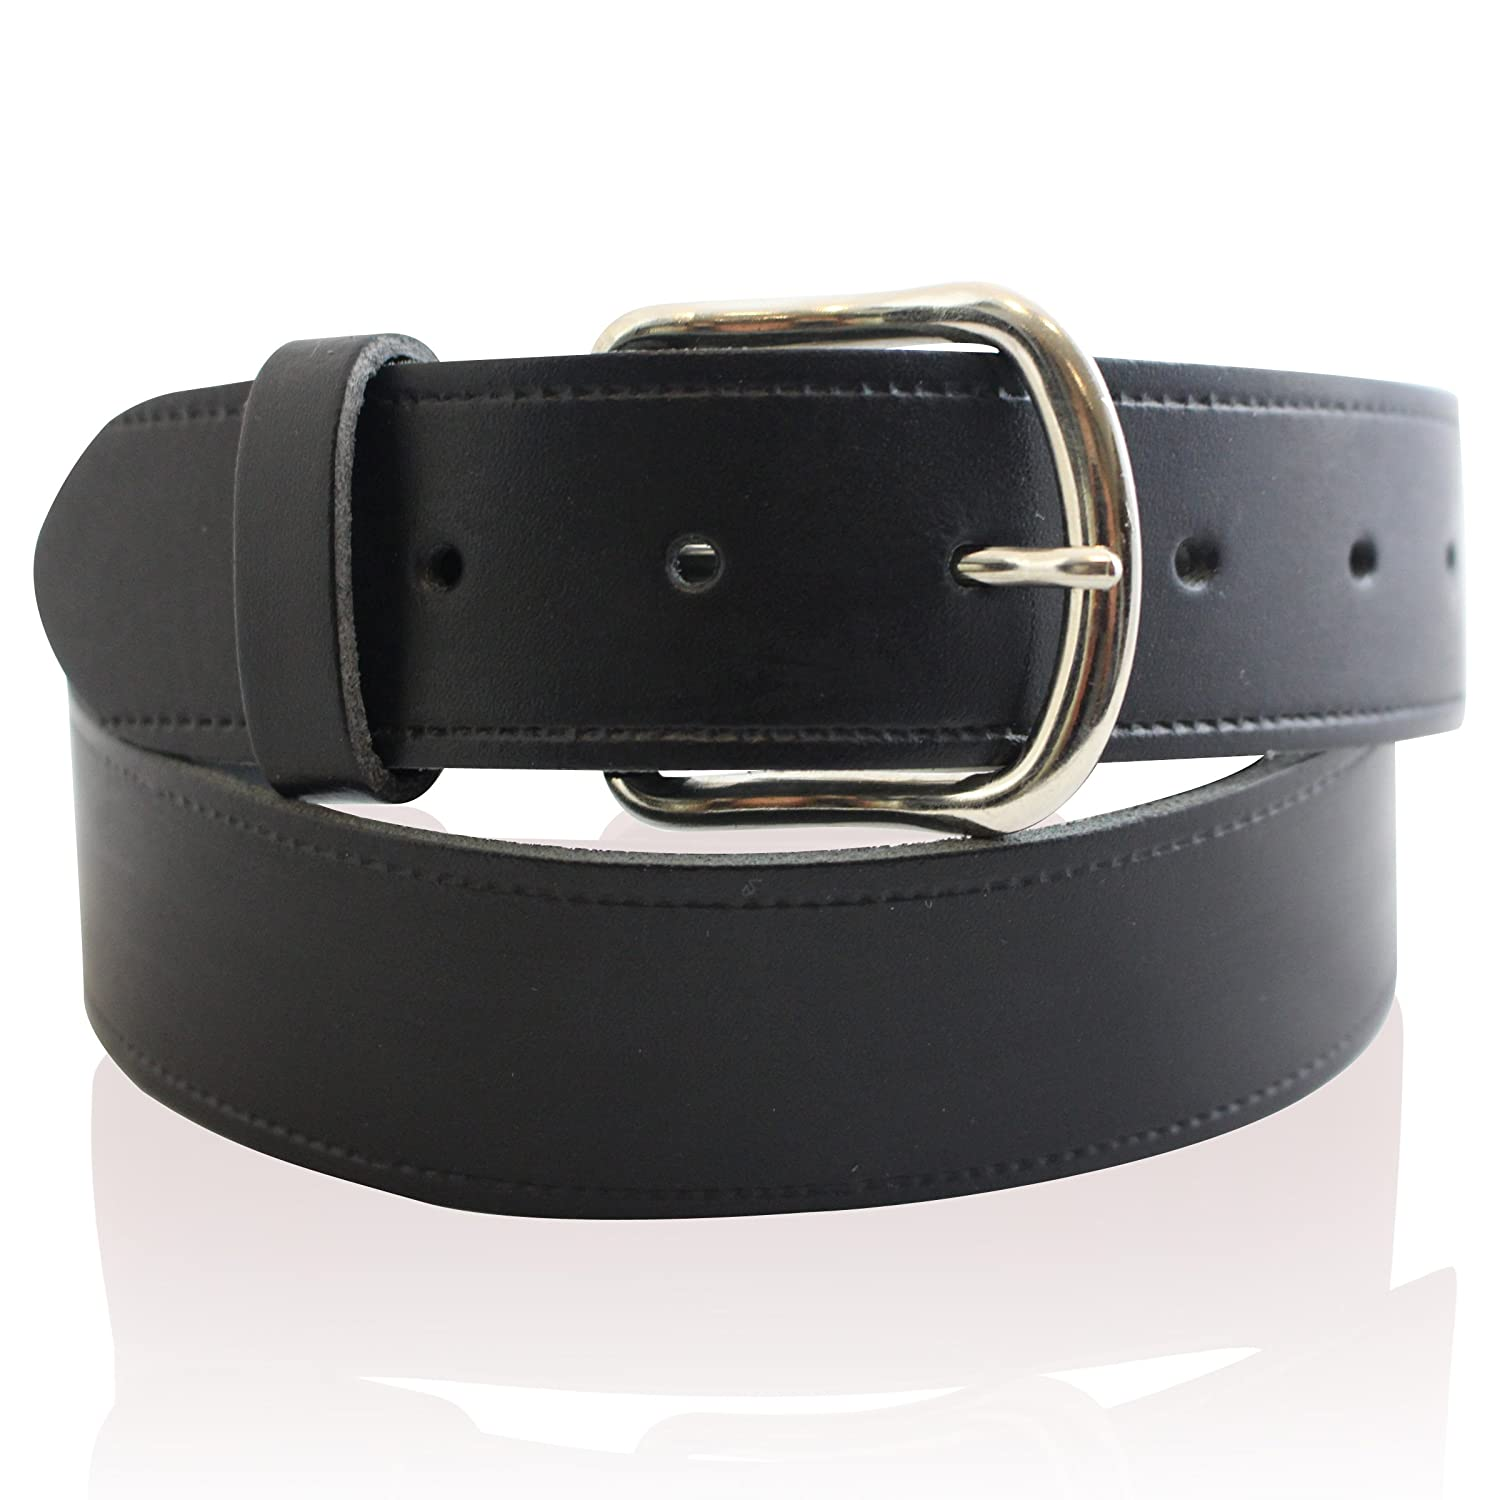 MENS REAL LEATHER 1.5 BLACK BELT FULL REAL LEATHER BELTS MADE IN ENGLAND 26-55'' ZACK HUNTER